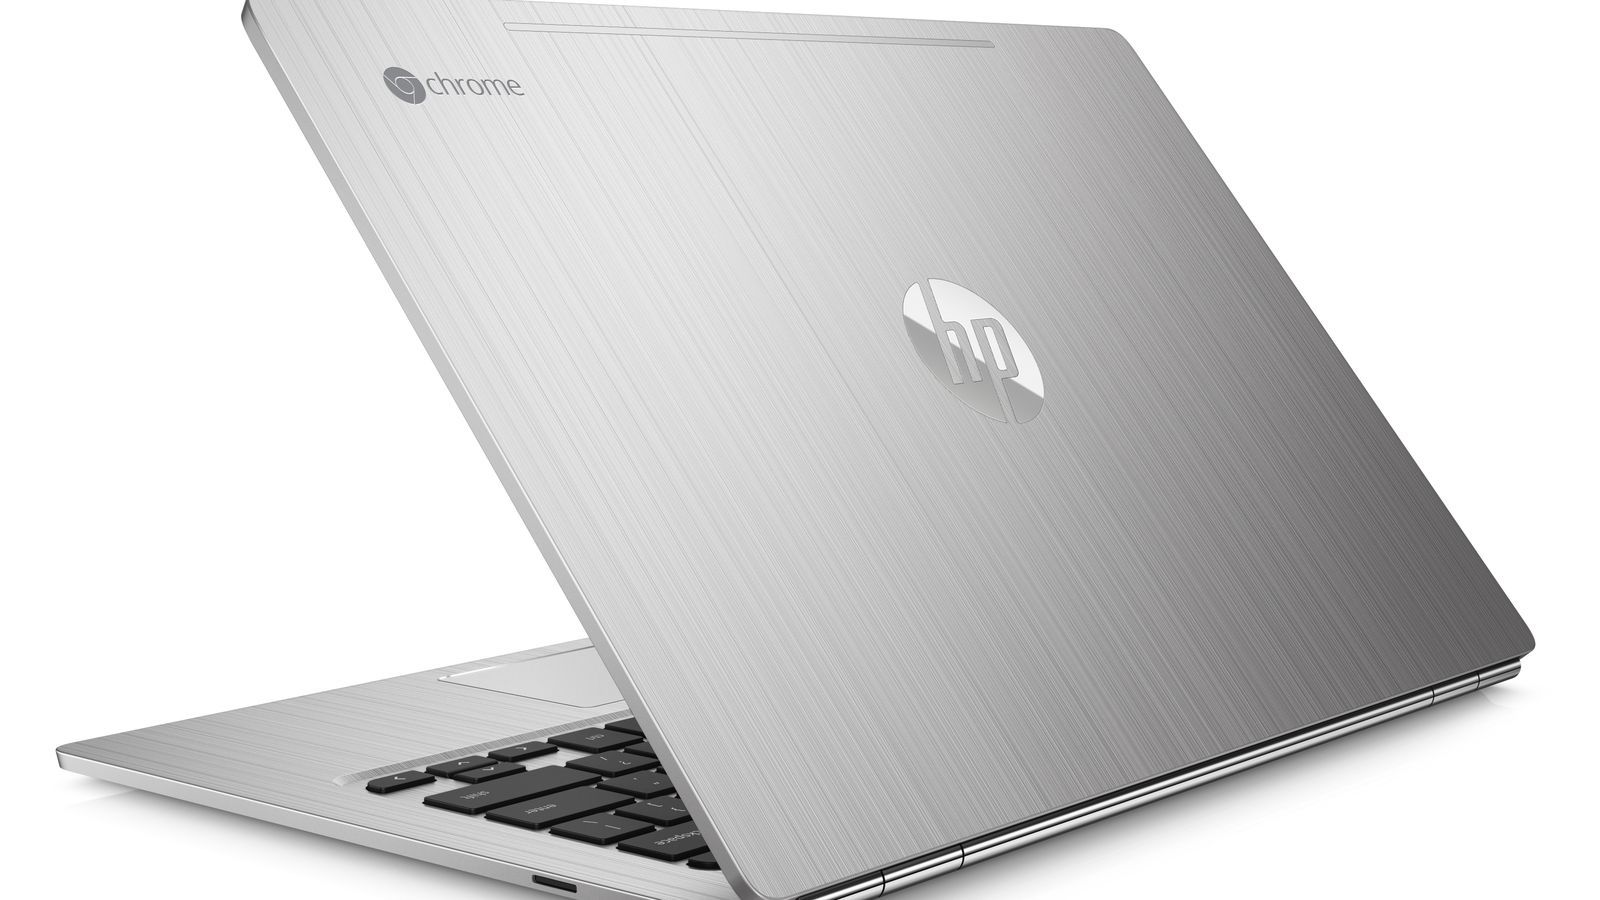 HP and Google made this thin, allmetal Chromebook